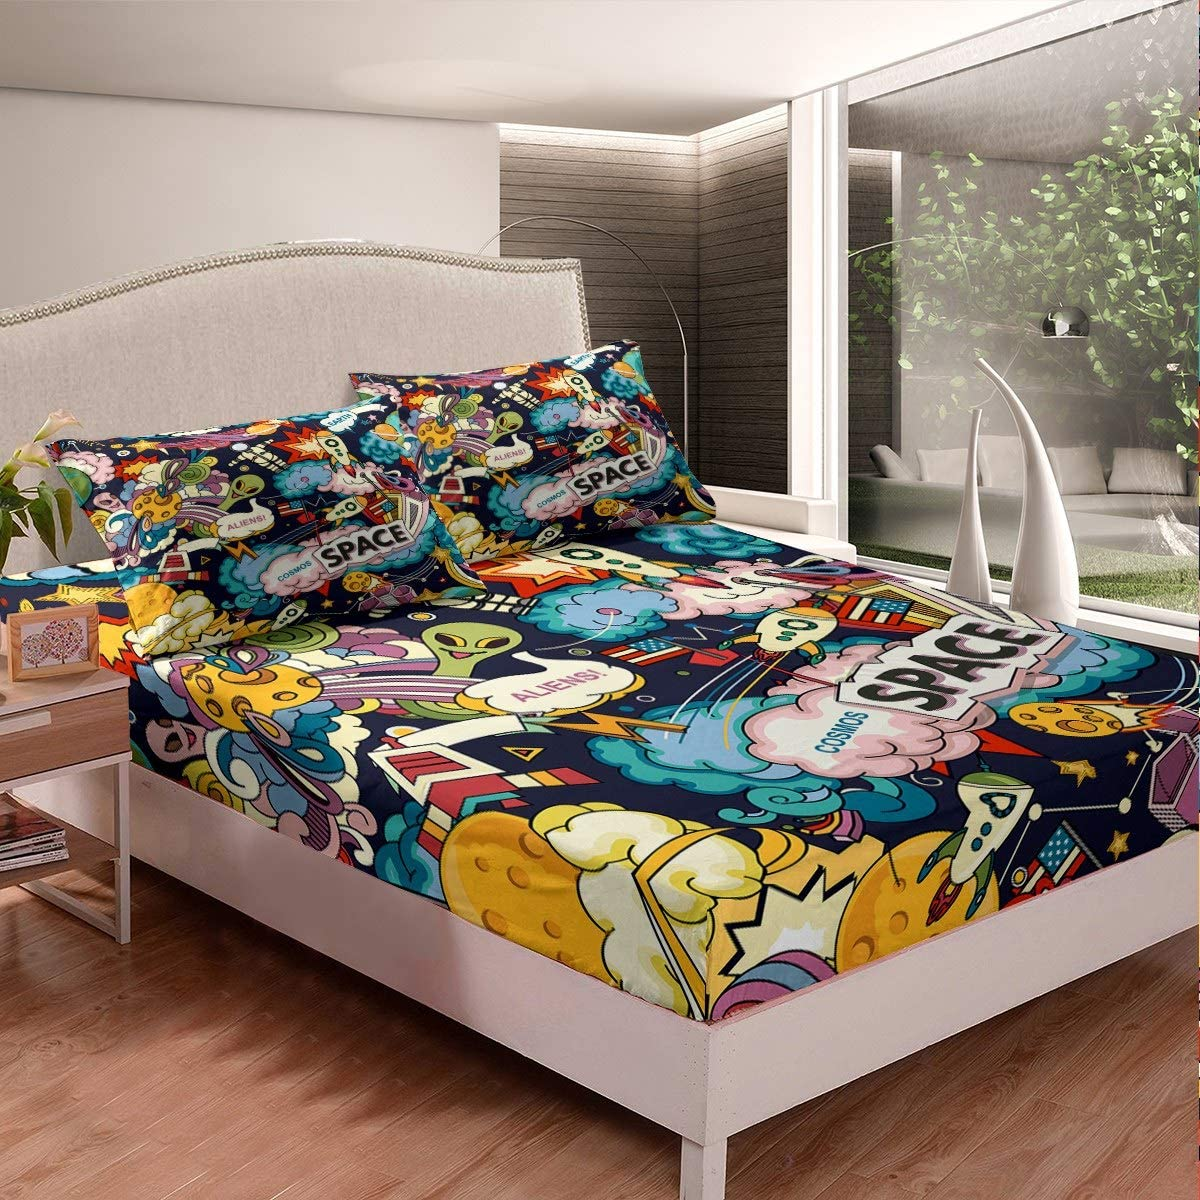 Cartoon Planet Fitted Sheet Outer Space Bed Earth Lowest price challenge C Now on sale Sheets Alien